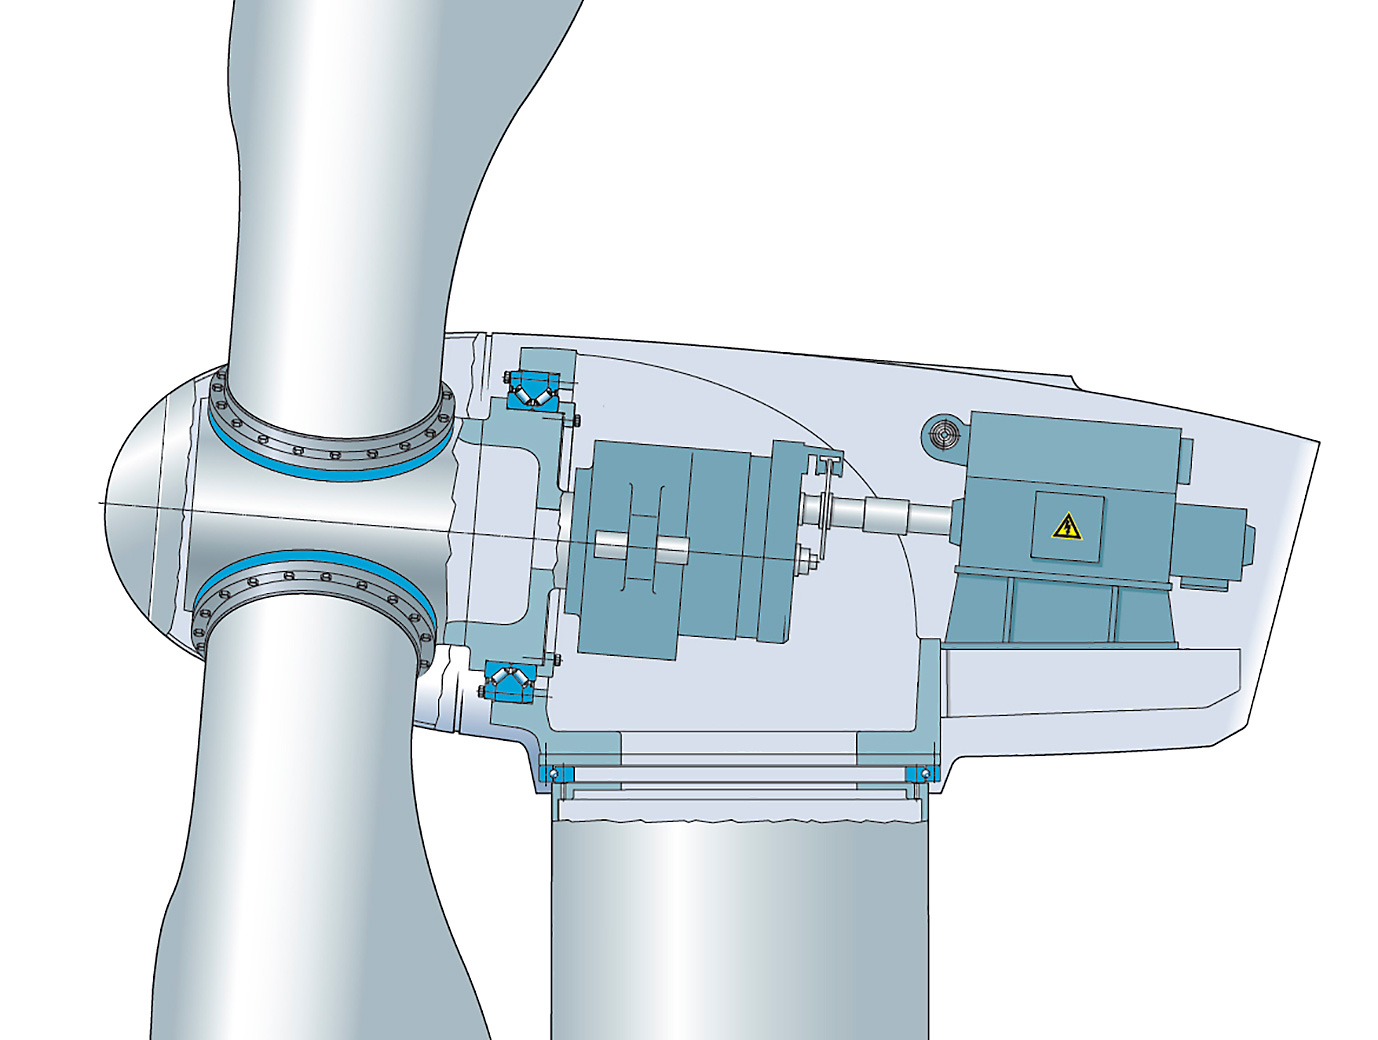 Fig. 7: Bearing arrangement with a semi-integrated SKF Nautilus bearing, resulting in a compact drivetrain.